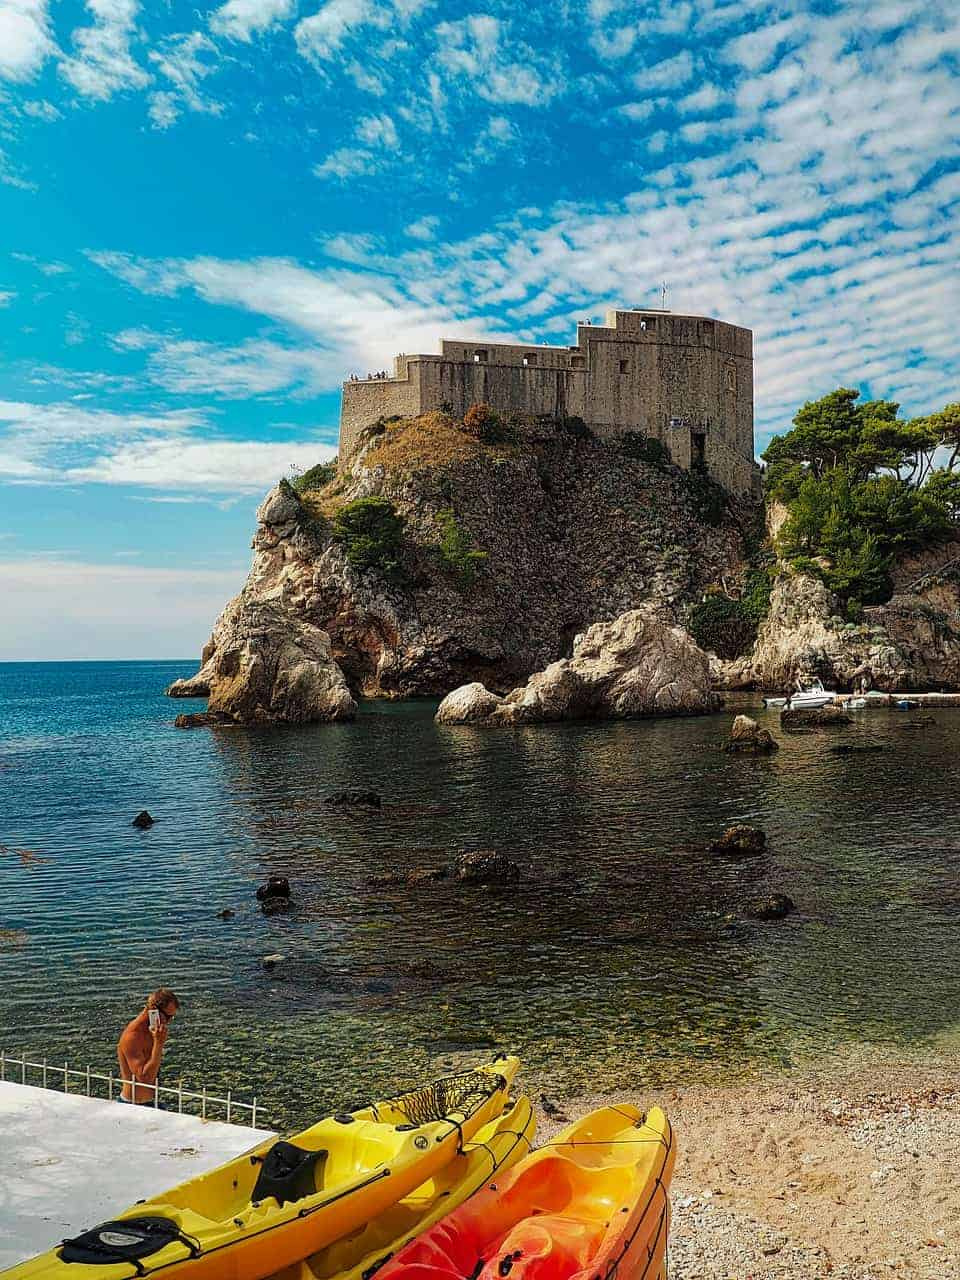 Where-to-stay-in-dubrovnik-kayaking